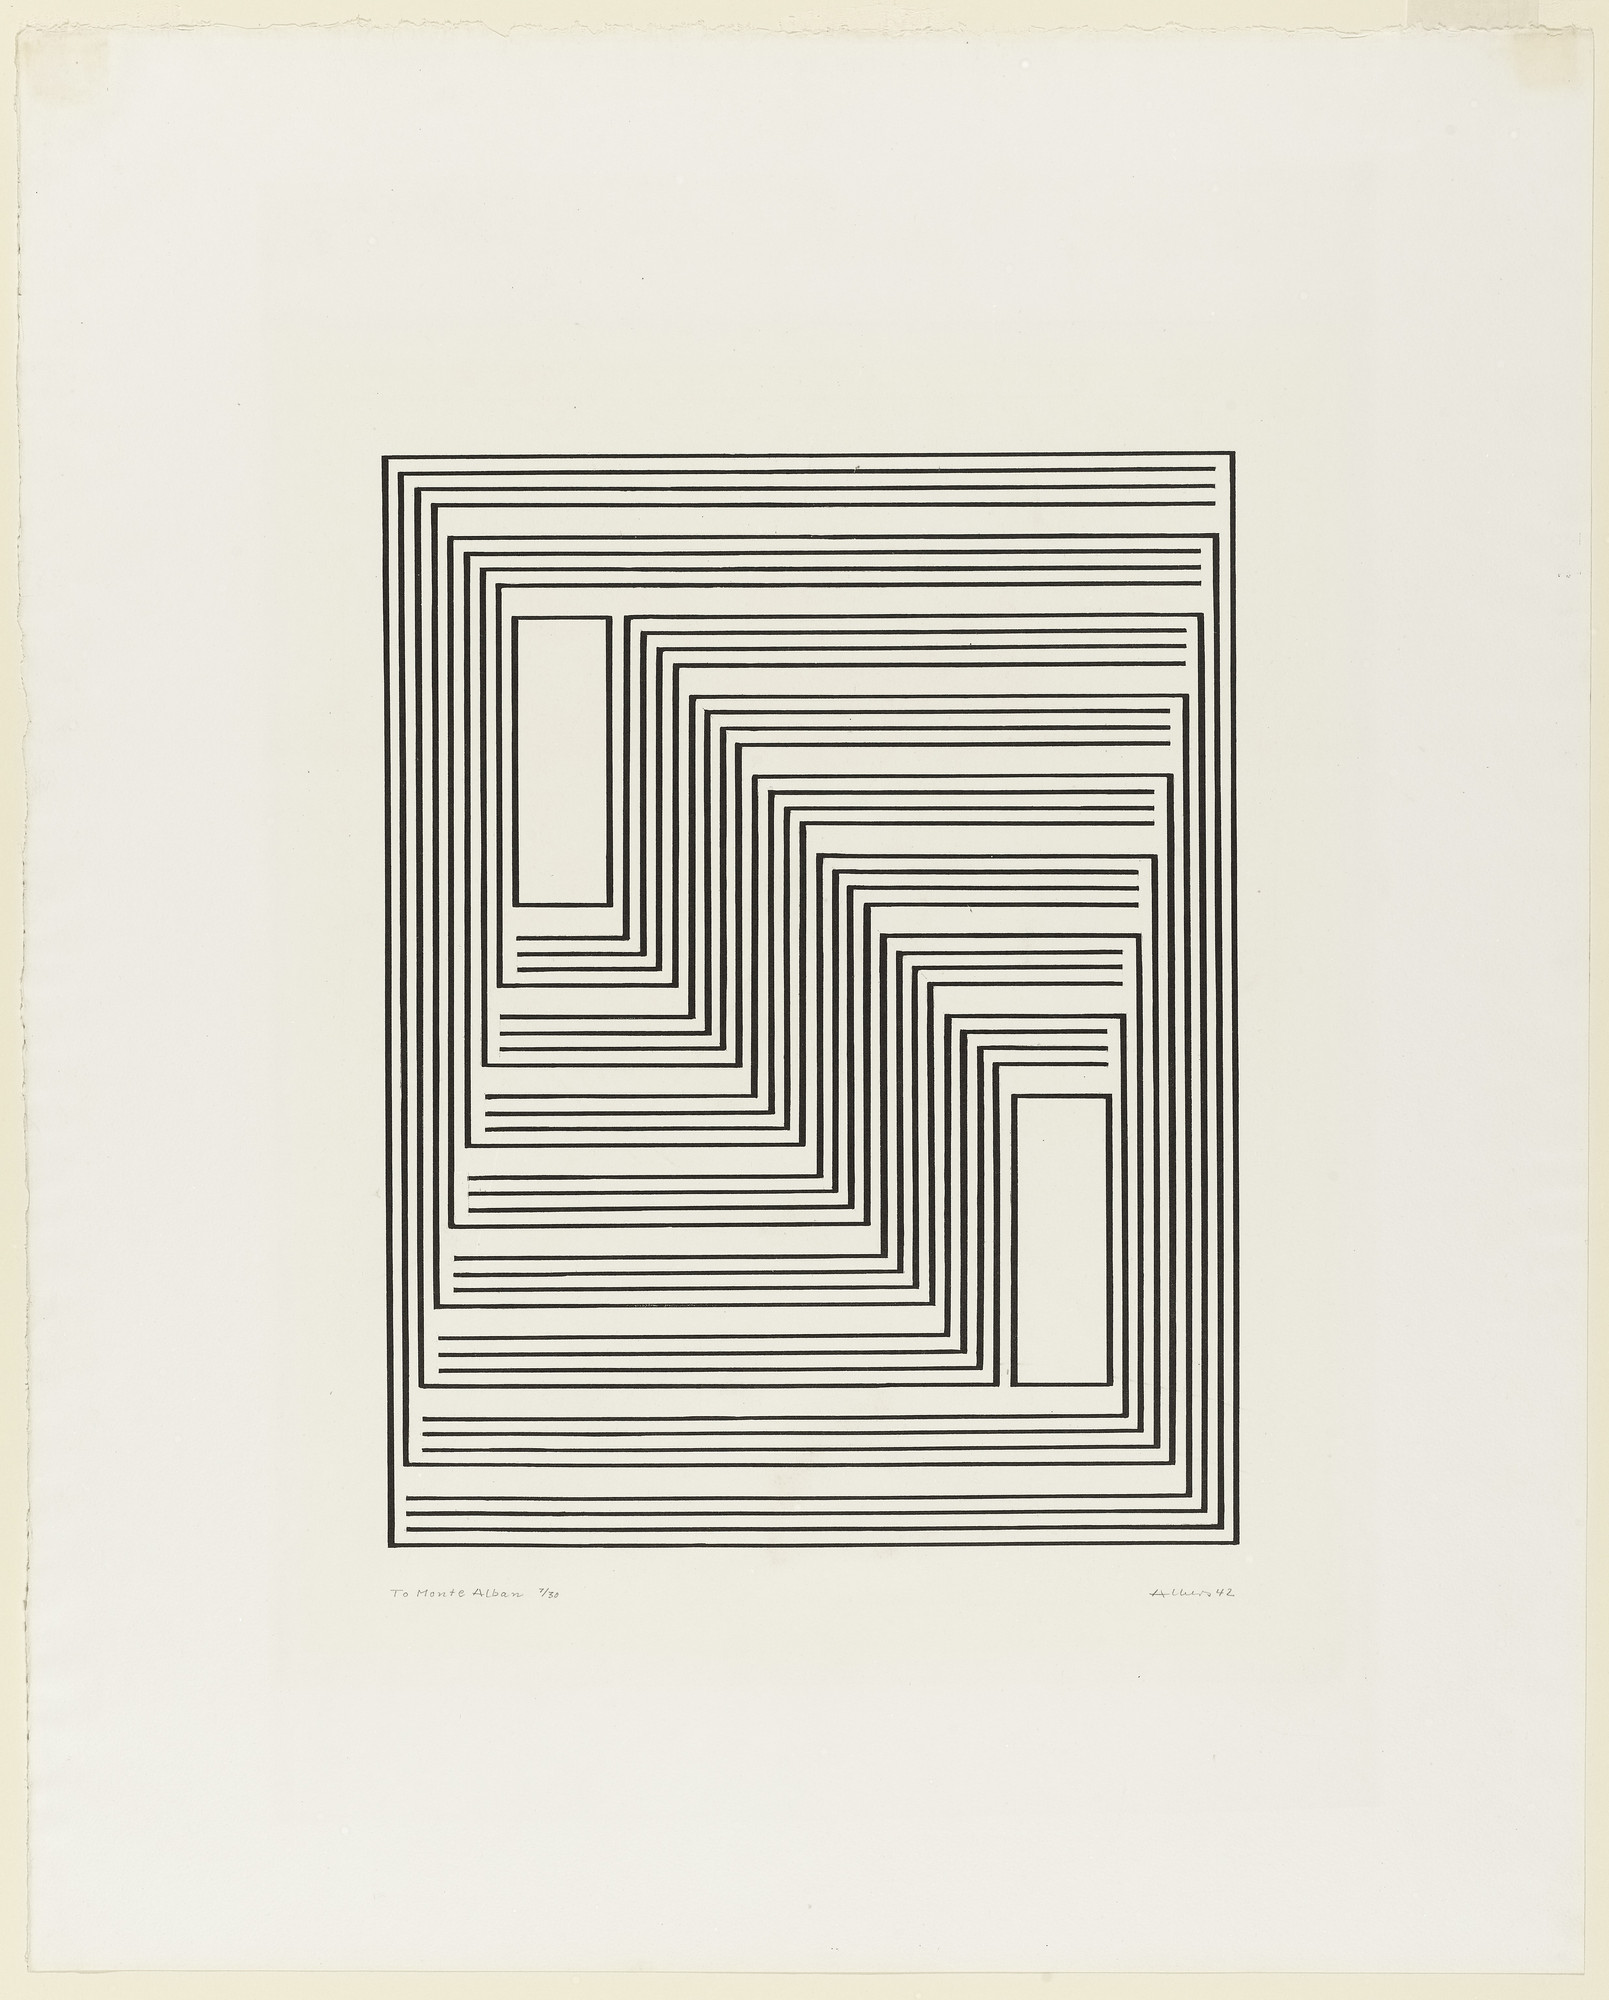 Josef Albers. To Monte Alban from the series Graphic Tectonic. 1942